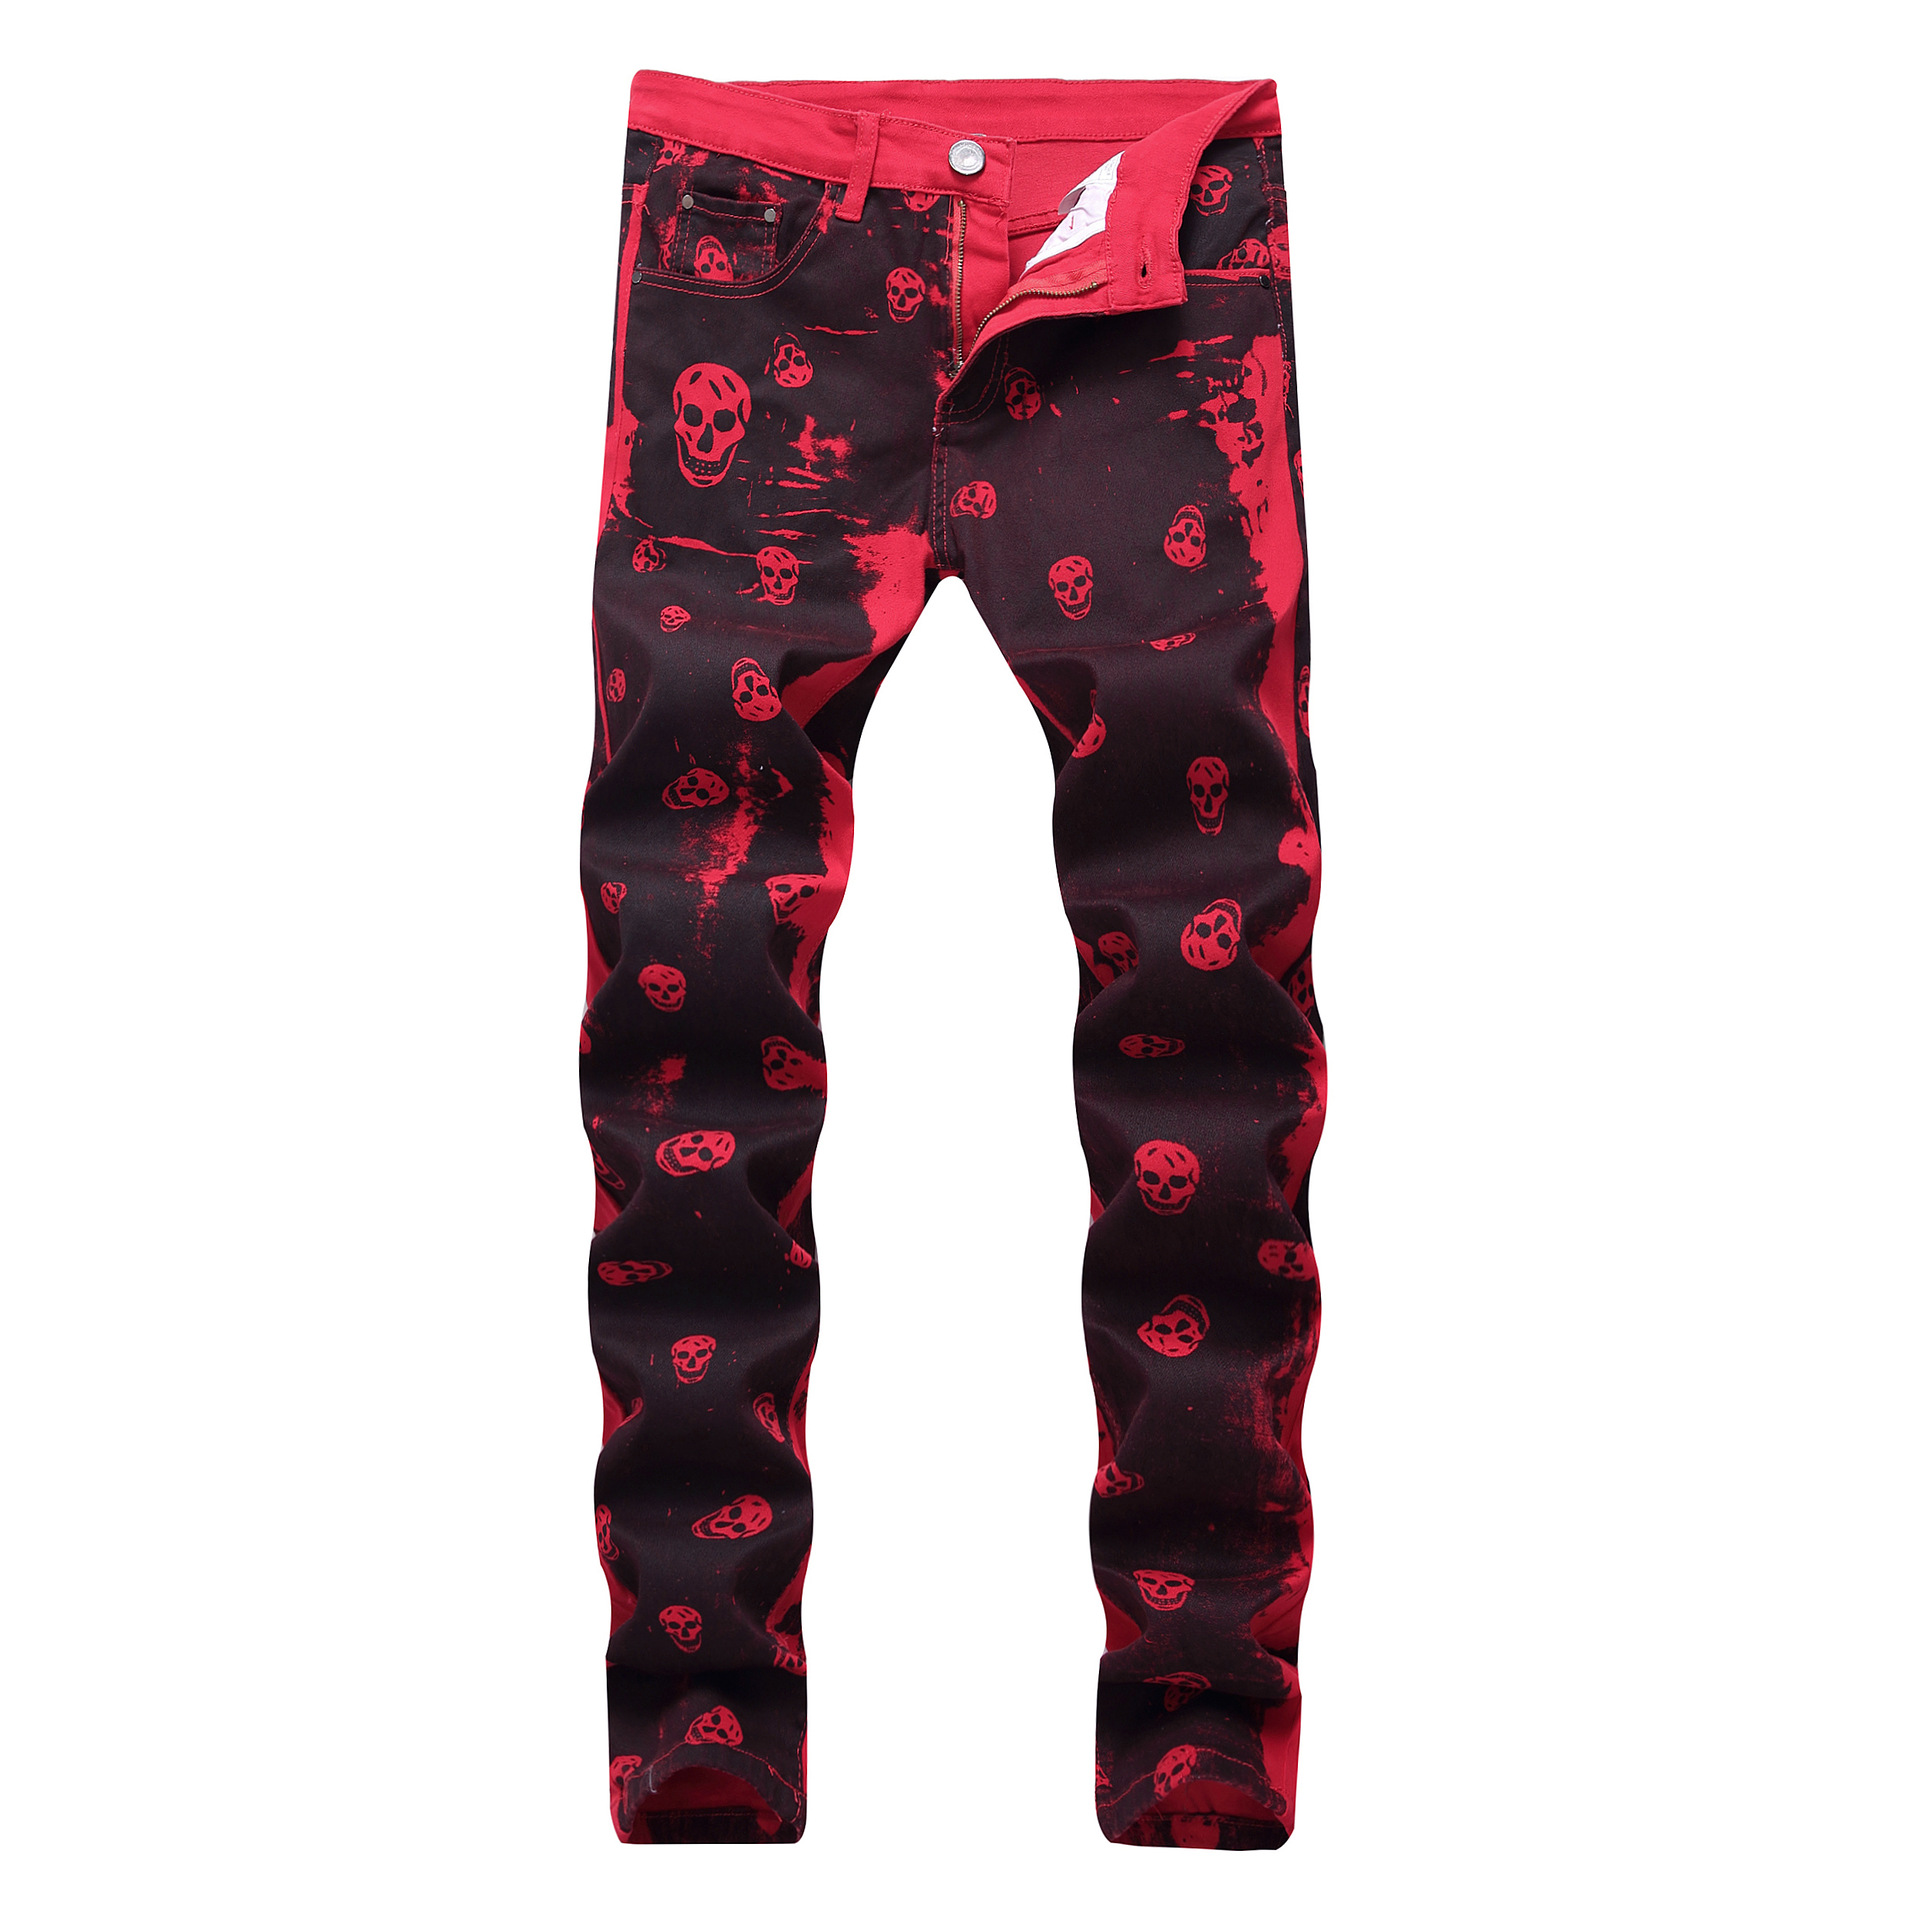 2019 New Arrival Hot Sale Pattern Full Length Plaid Slim Men Jeans Cross Printed Red Cotton Elastic Amazon Style Trousers Light